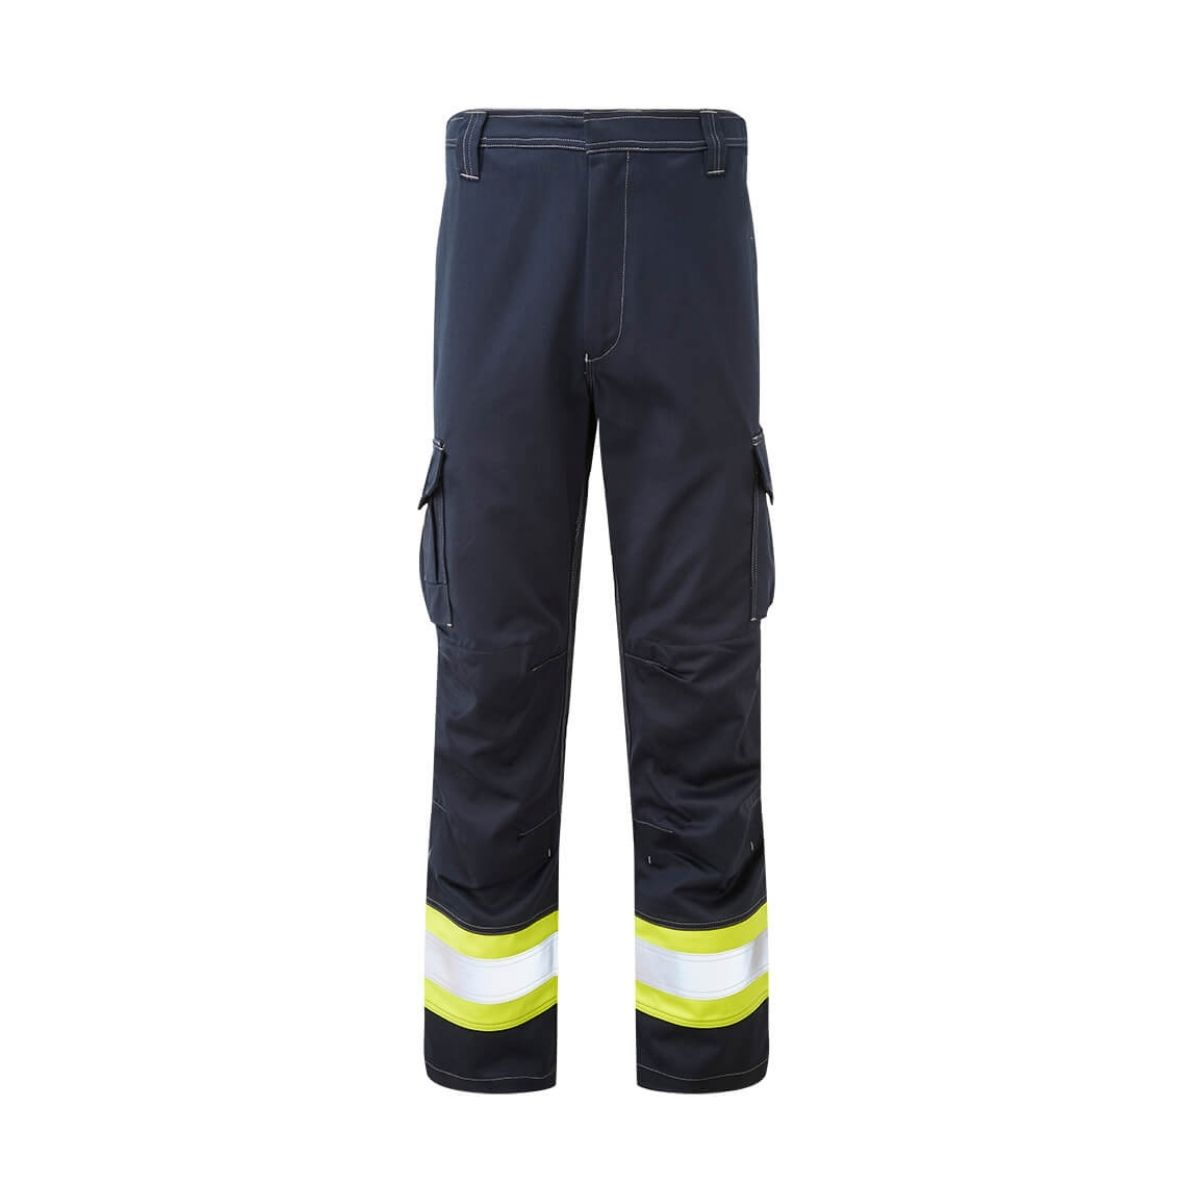 HAZTEC® Stag FR AS Inherent Trouser